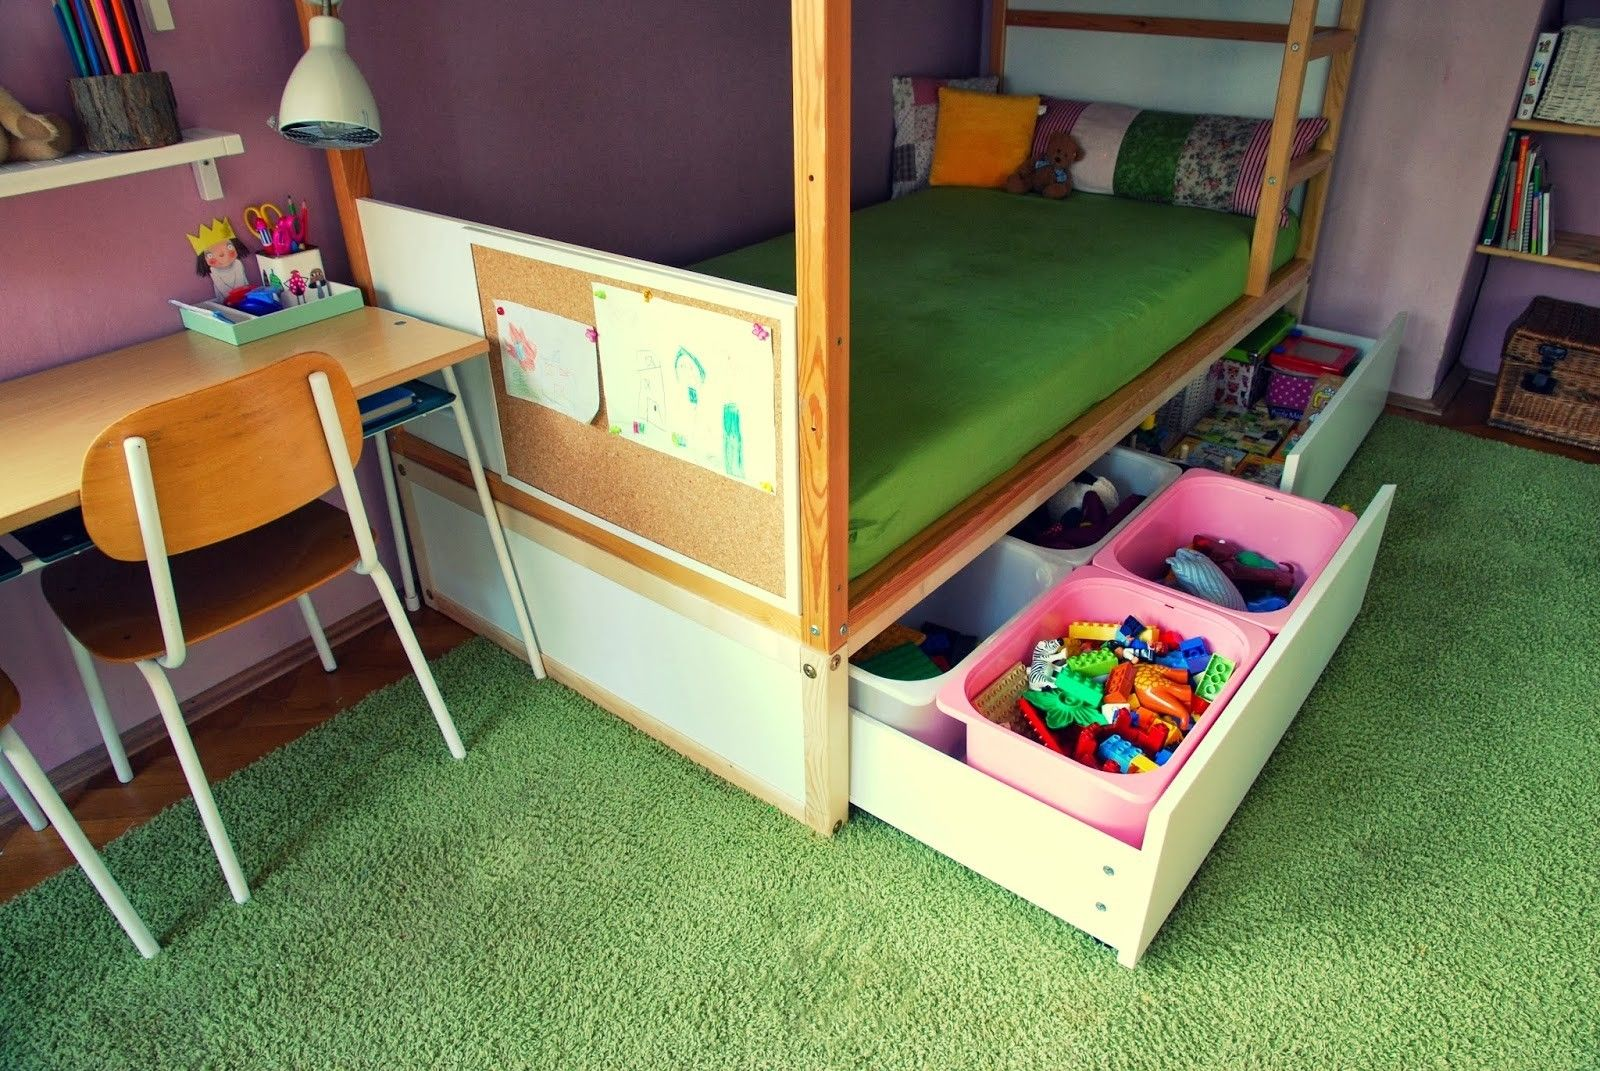 Fire truck loft bed with slide  Pin by Kelly Foley on kids rooms  Pinterest  Kids rooms and Room